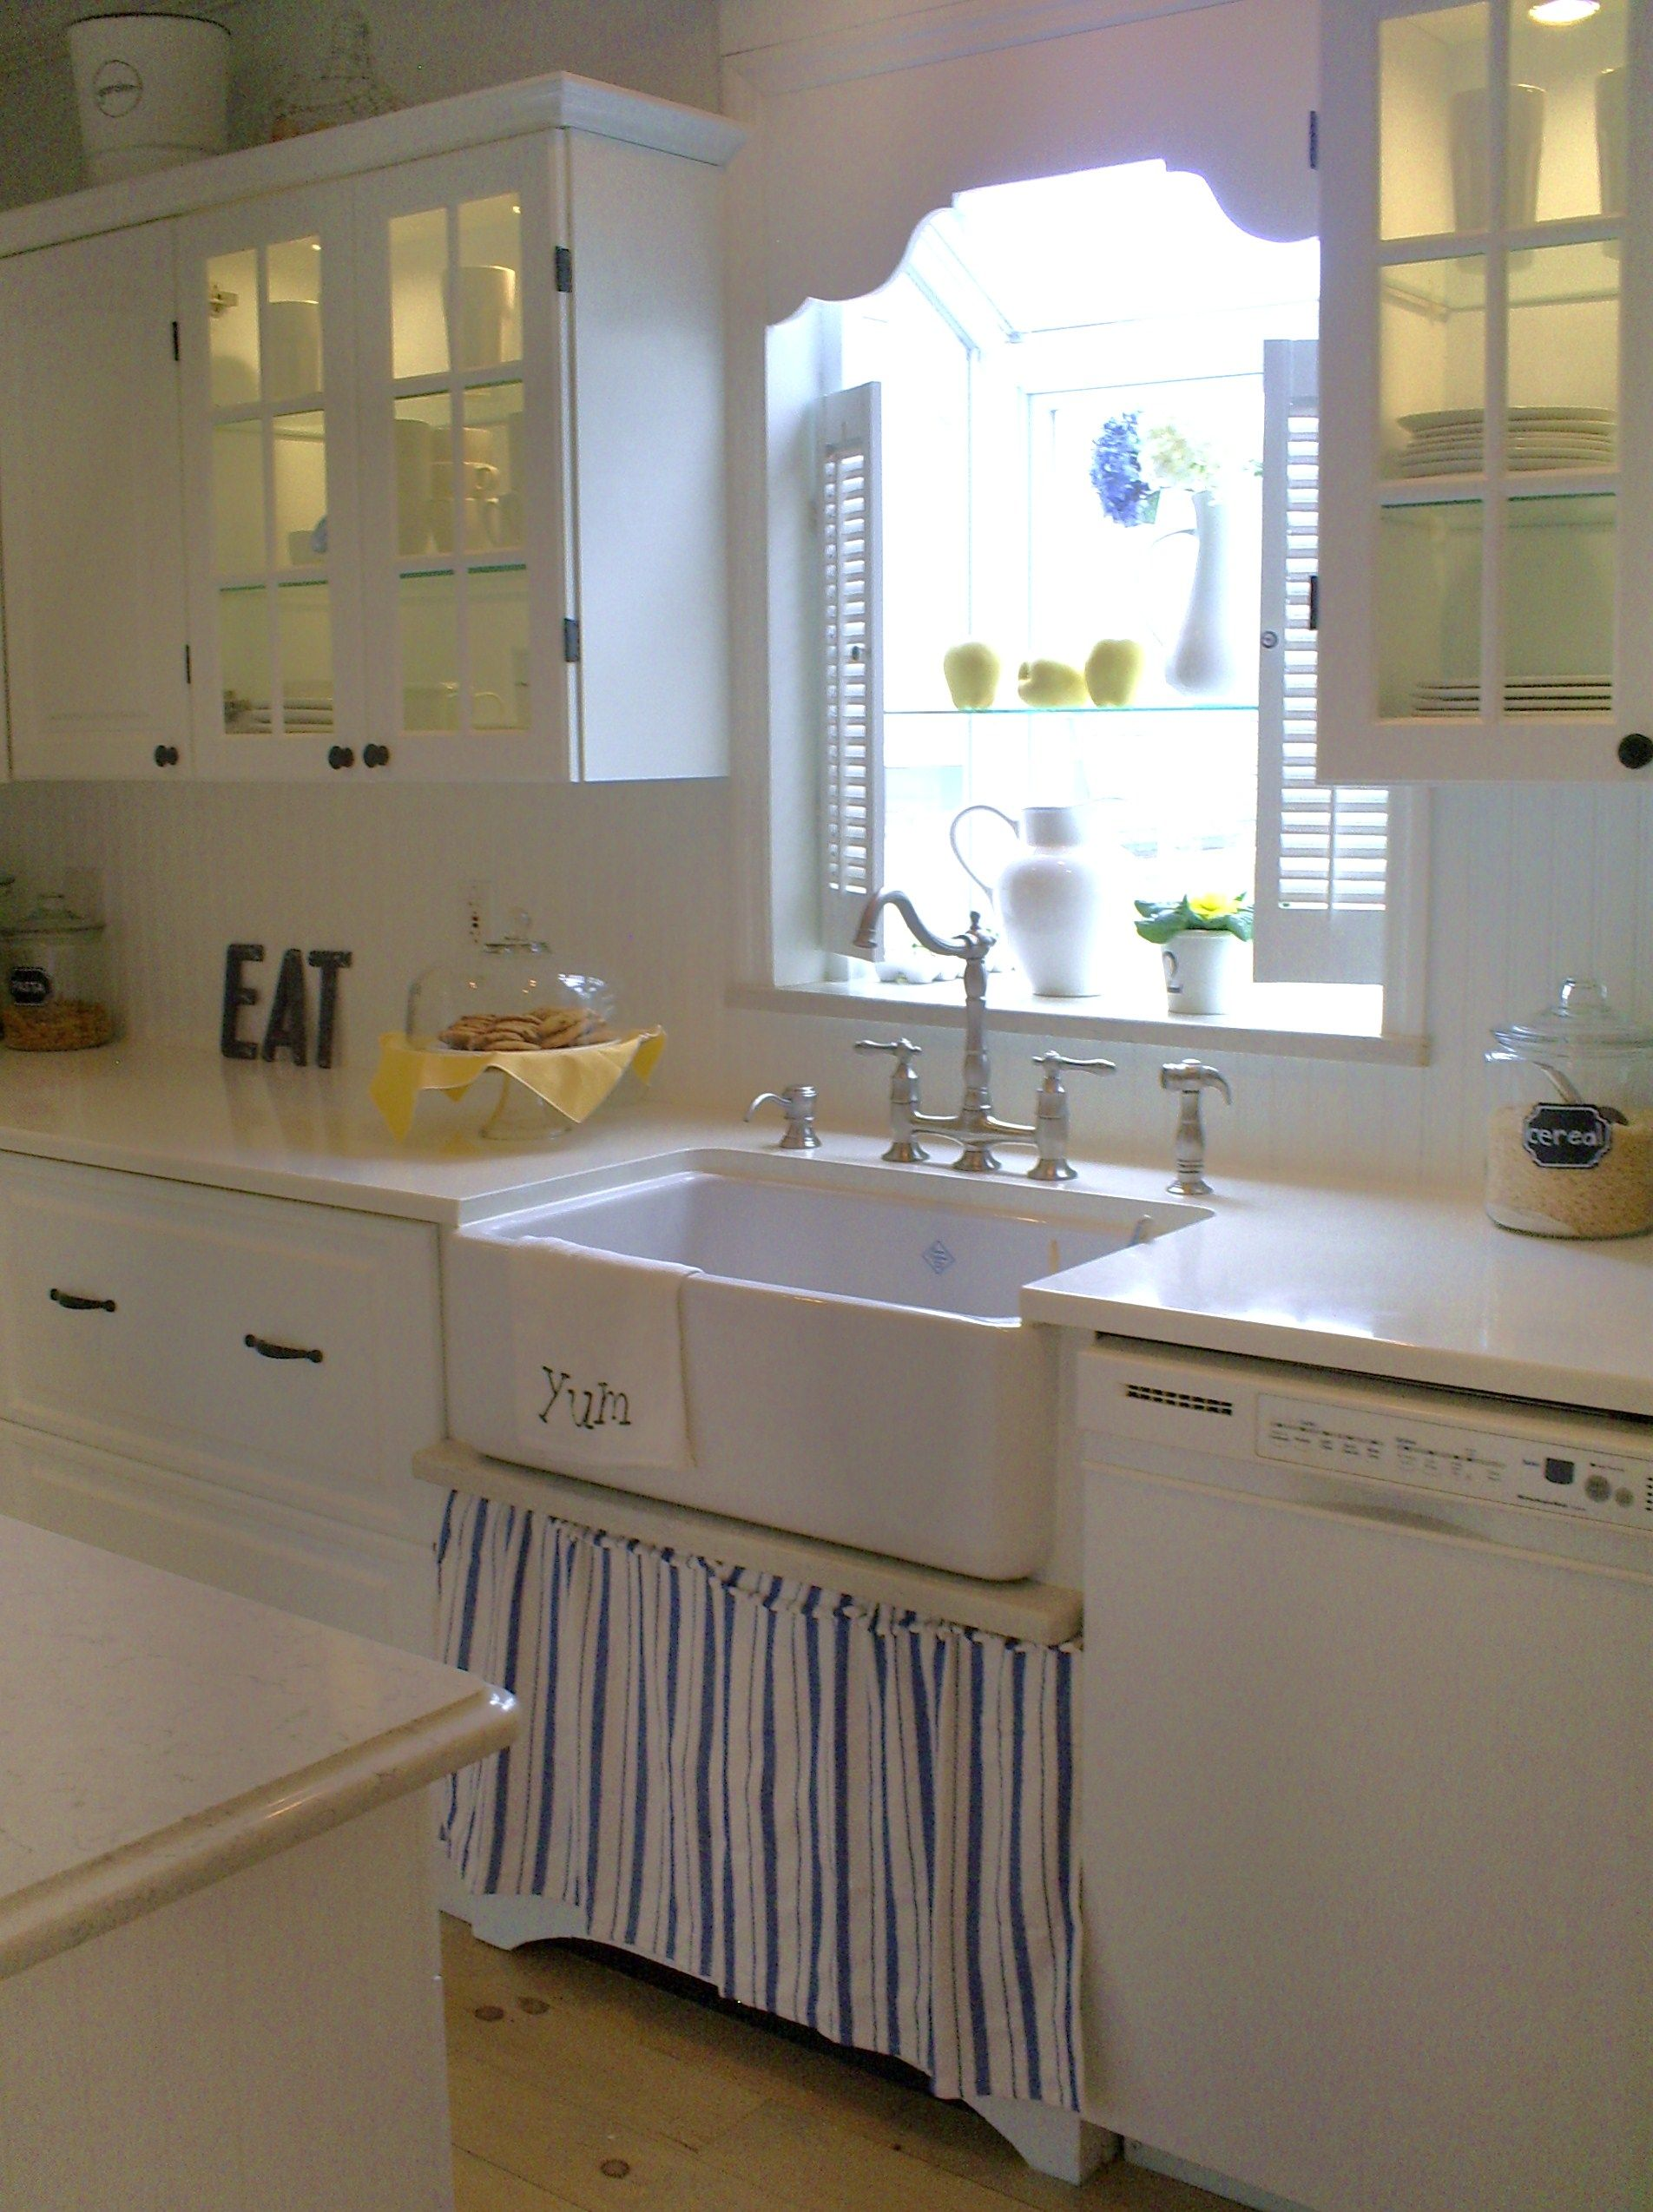 Skirted Sink Cottage Kitchen Sinks Country Cottage Kitchen Kitchen Cabinets